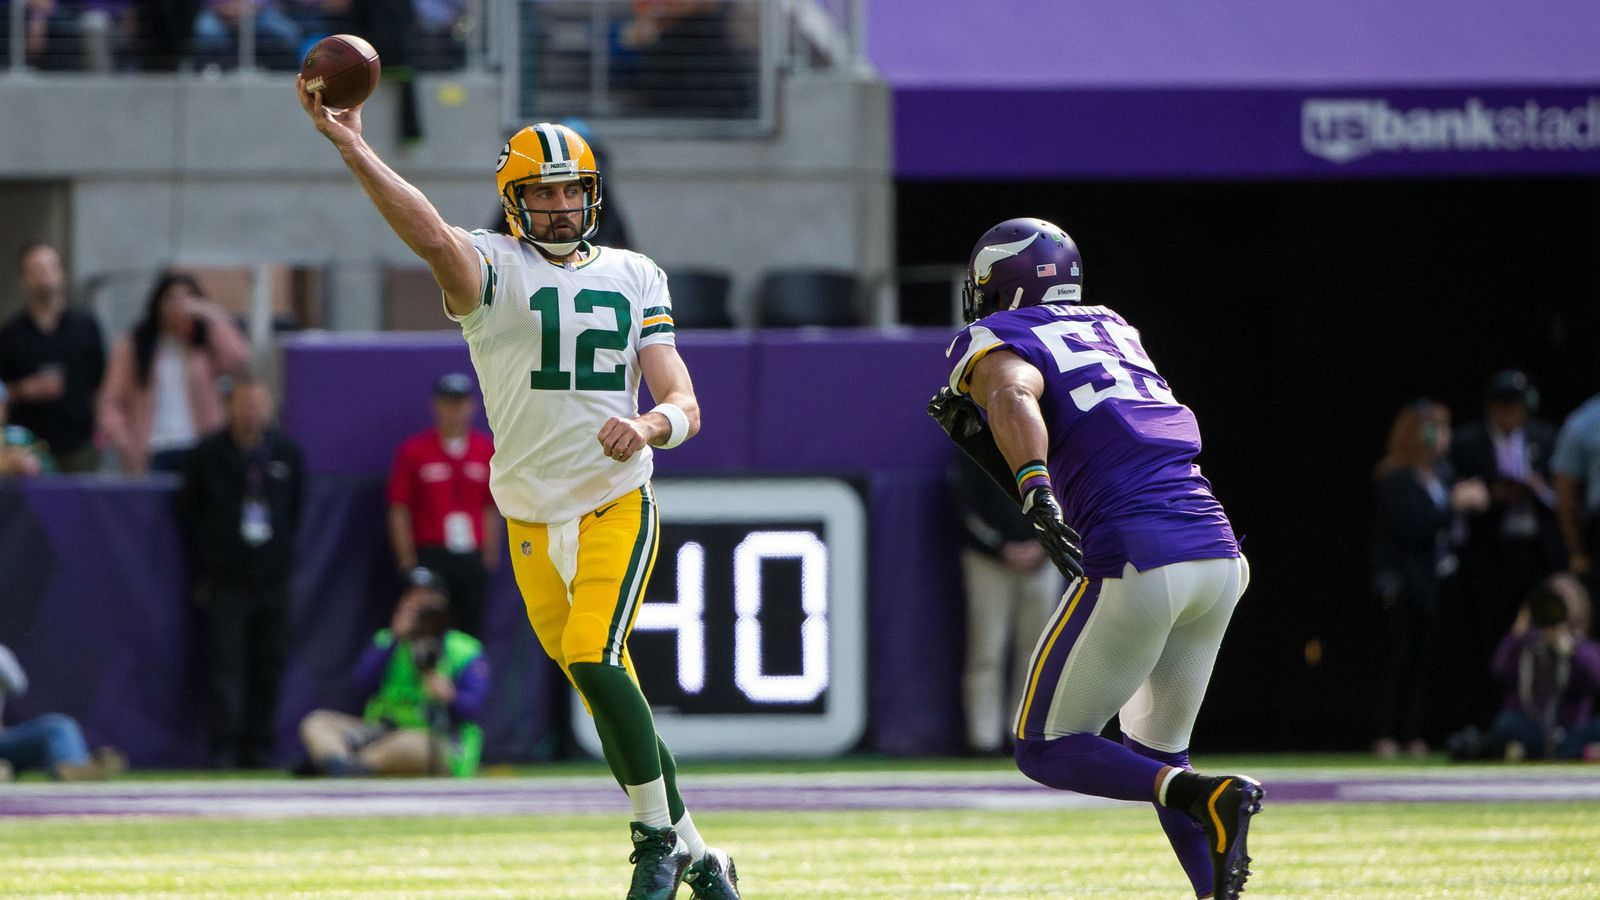 After Aaron Rodgers Suffered A Broken Collarbone On A Hit From Minnesota Vikings Linebacker Anthony Barr Two Weeks Ago The Barr Quarterback Minnesota Vikings